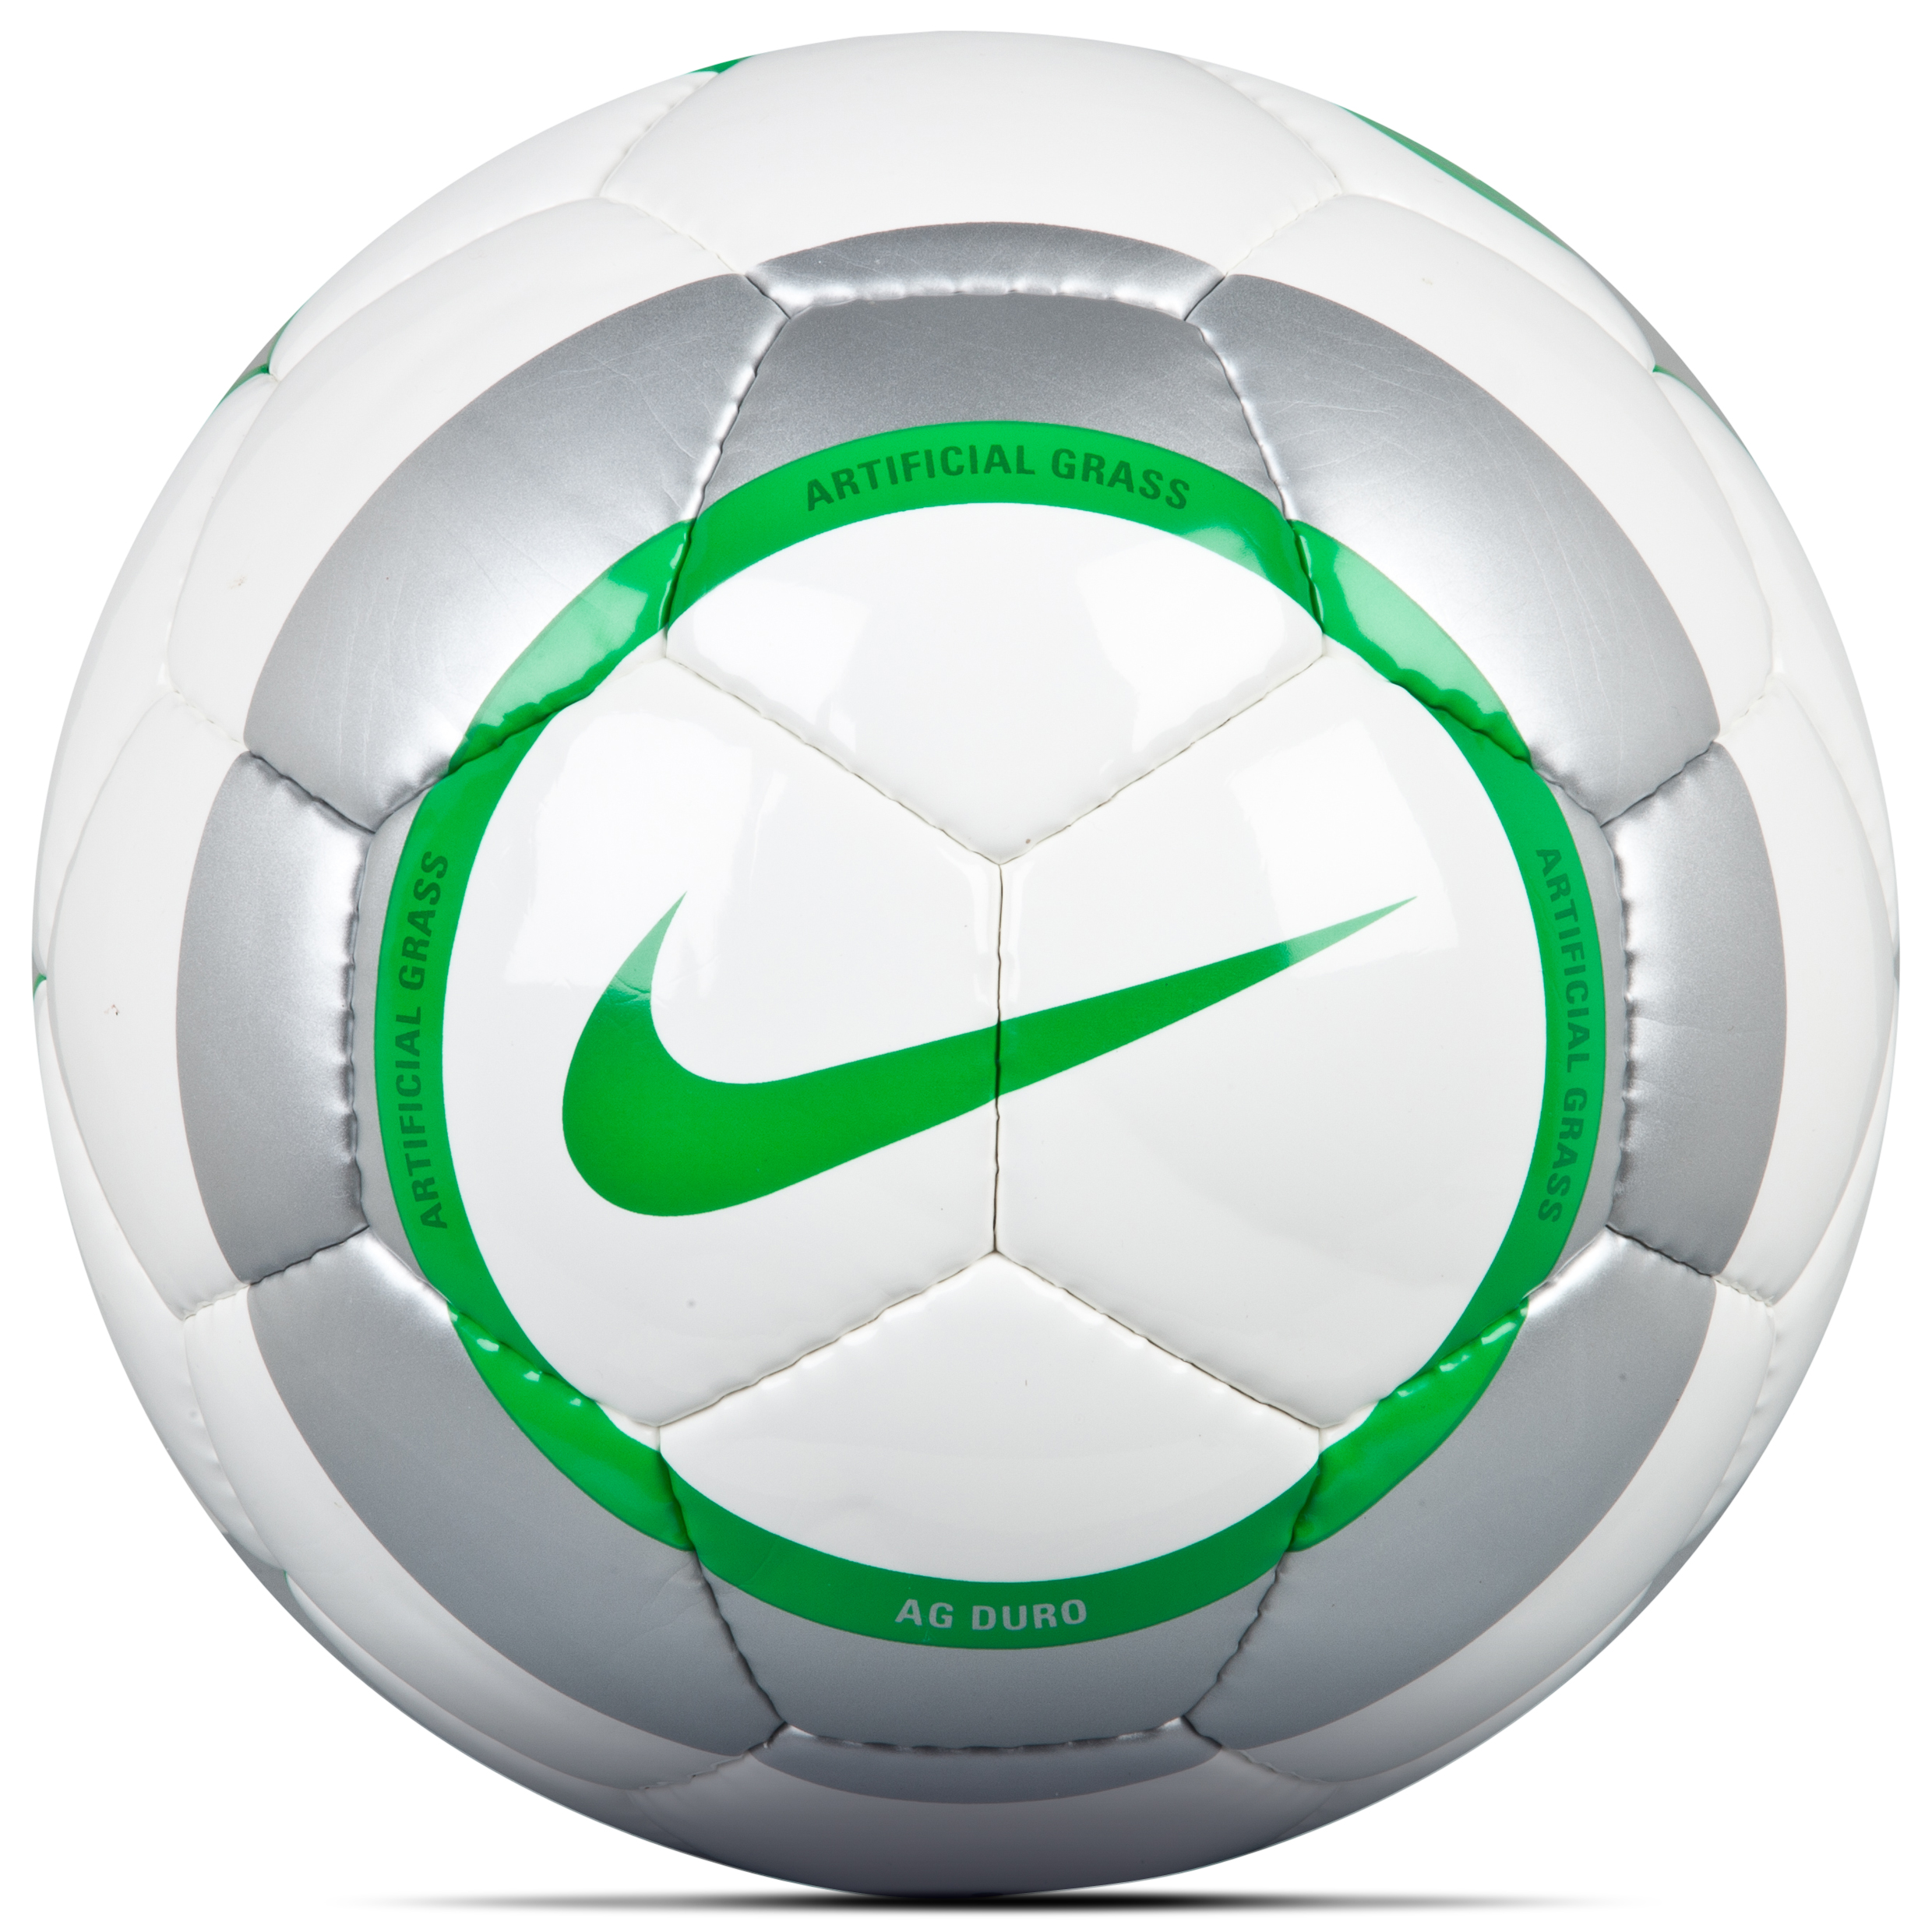 Celtic T90 AG Duro Football - White/Silve/Green